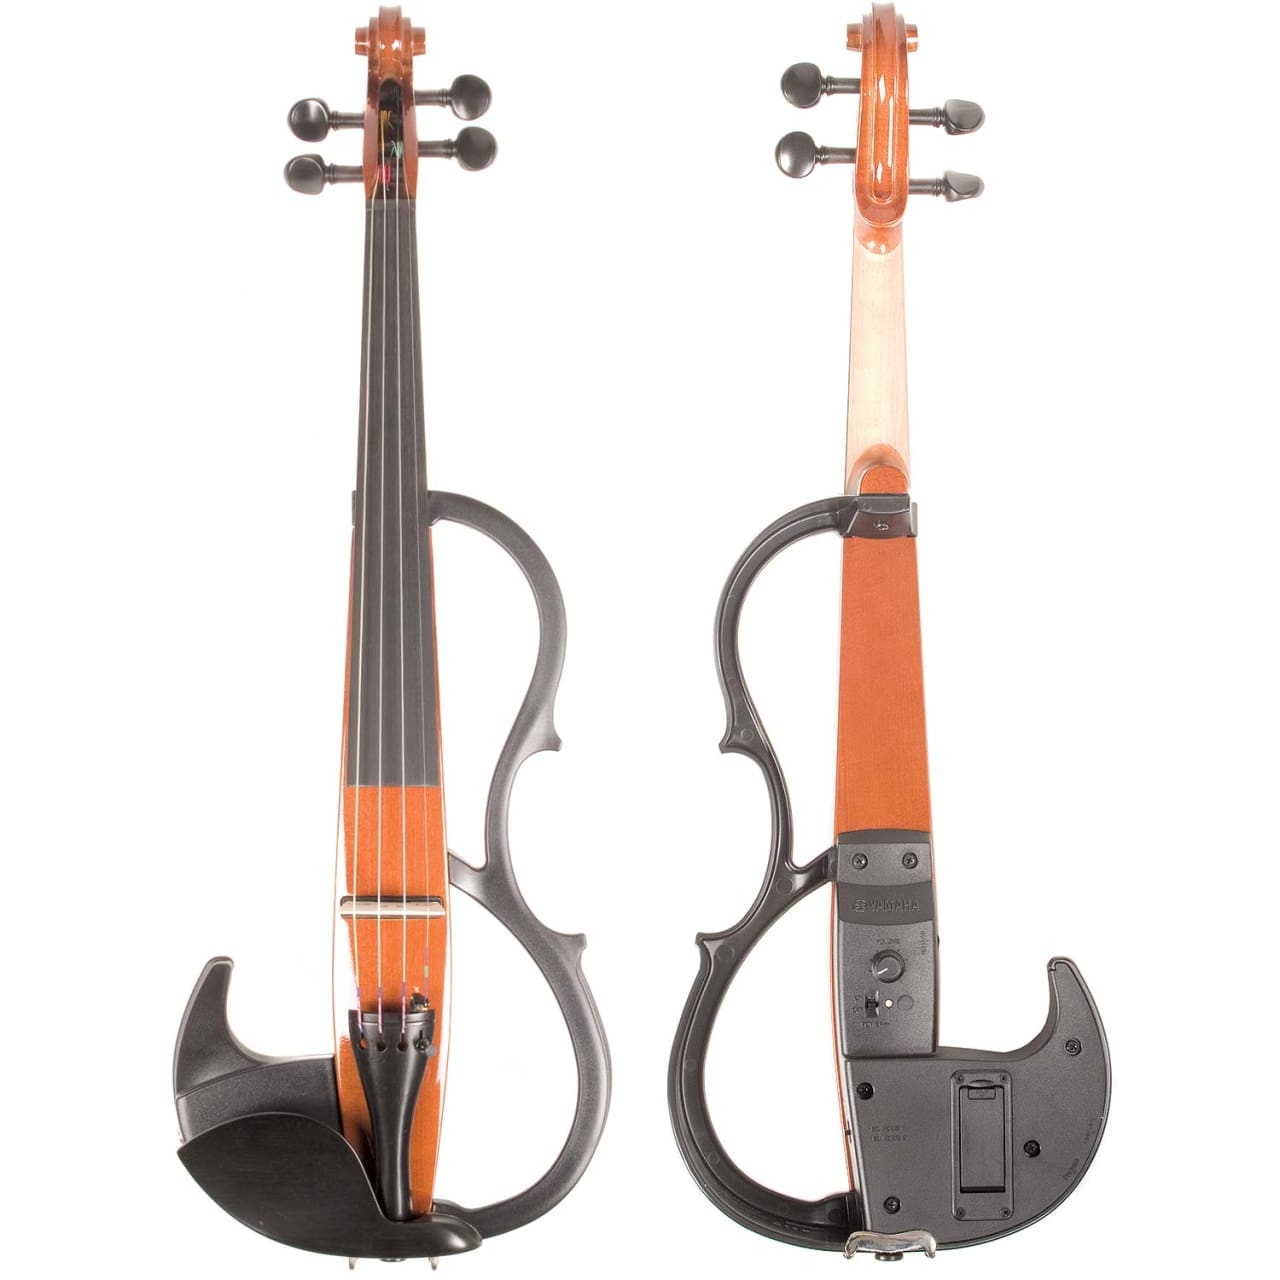 Yamaha sv 200 silent electric violin brown reverb for Yamaha svc 110sk silent electric cello brown